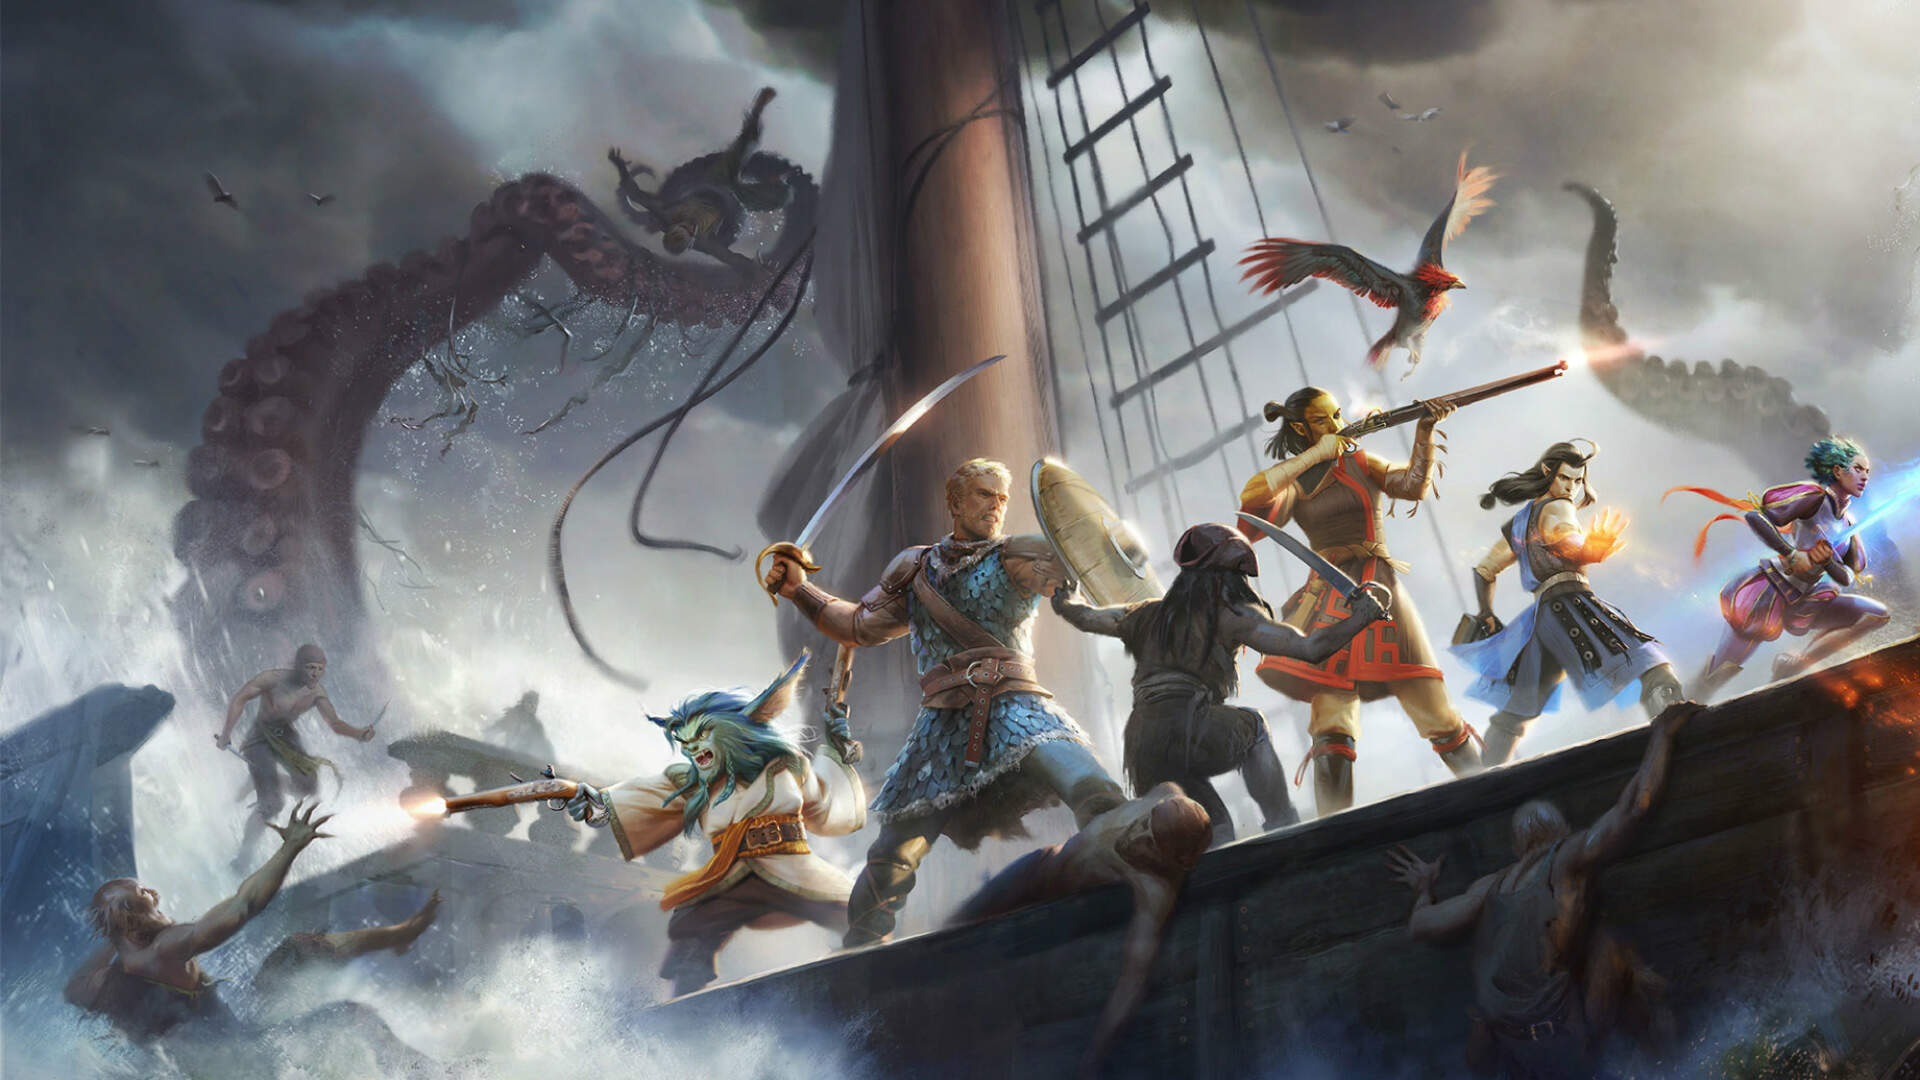 Pillars of Eternity 2 Console Port Gets a New Release Date